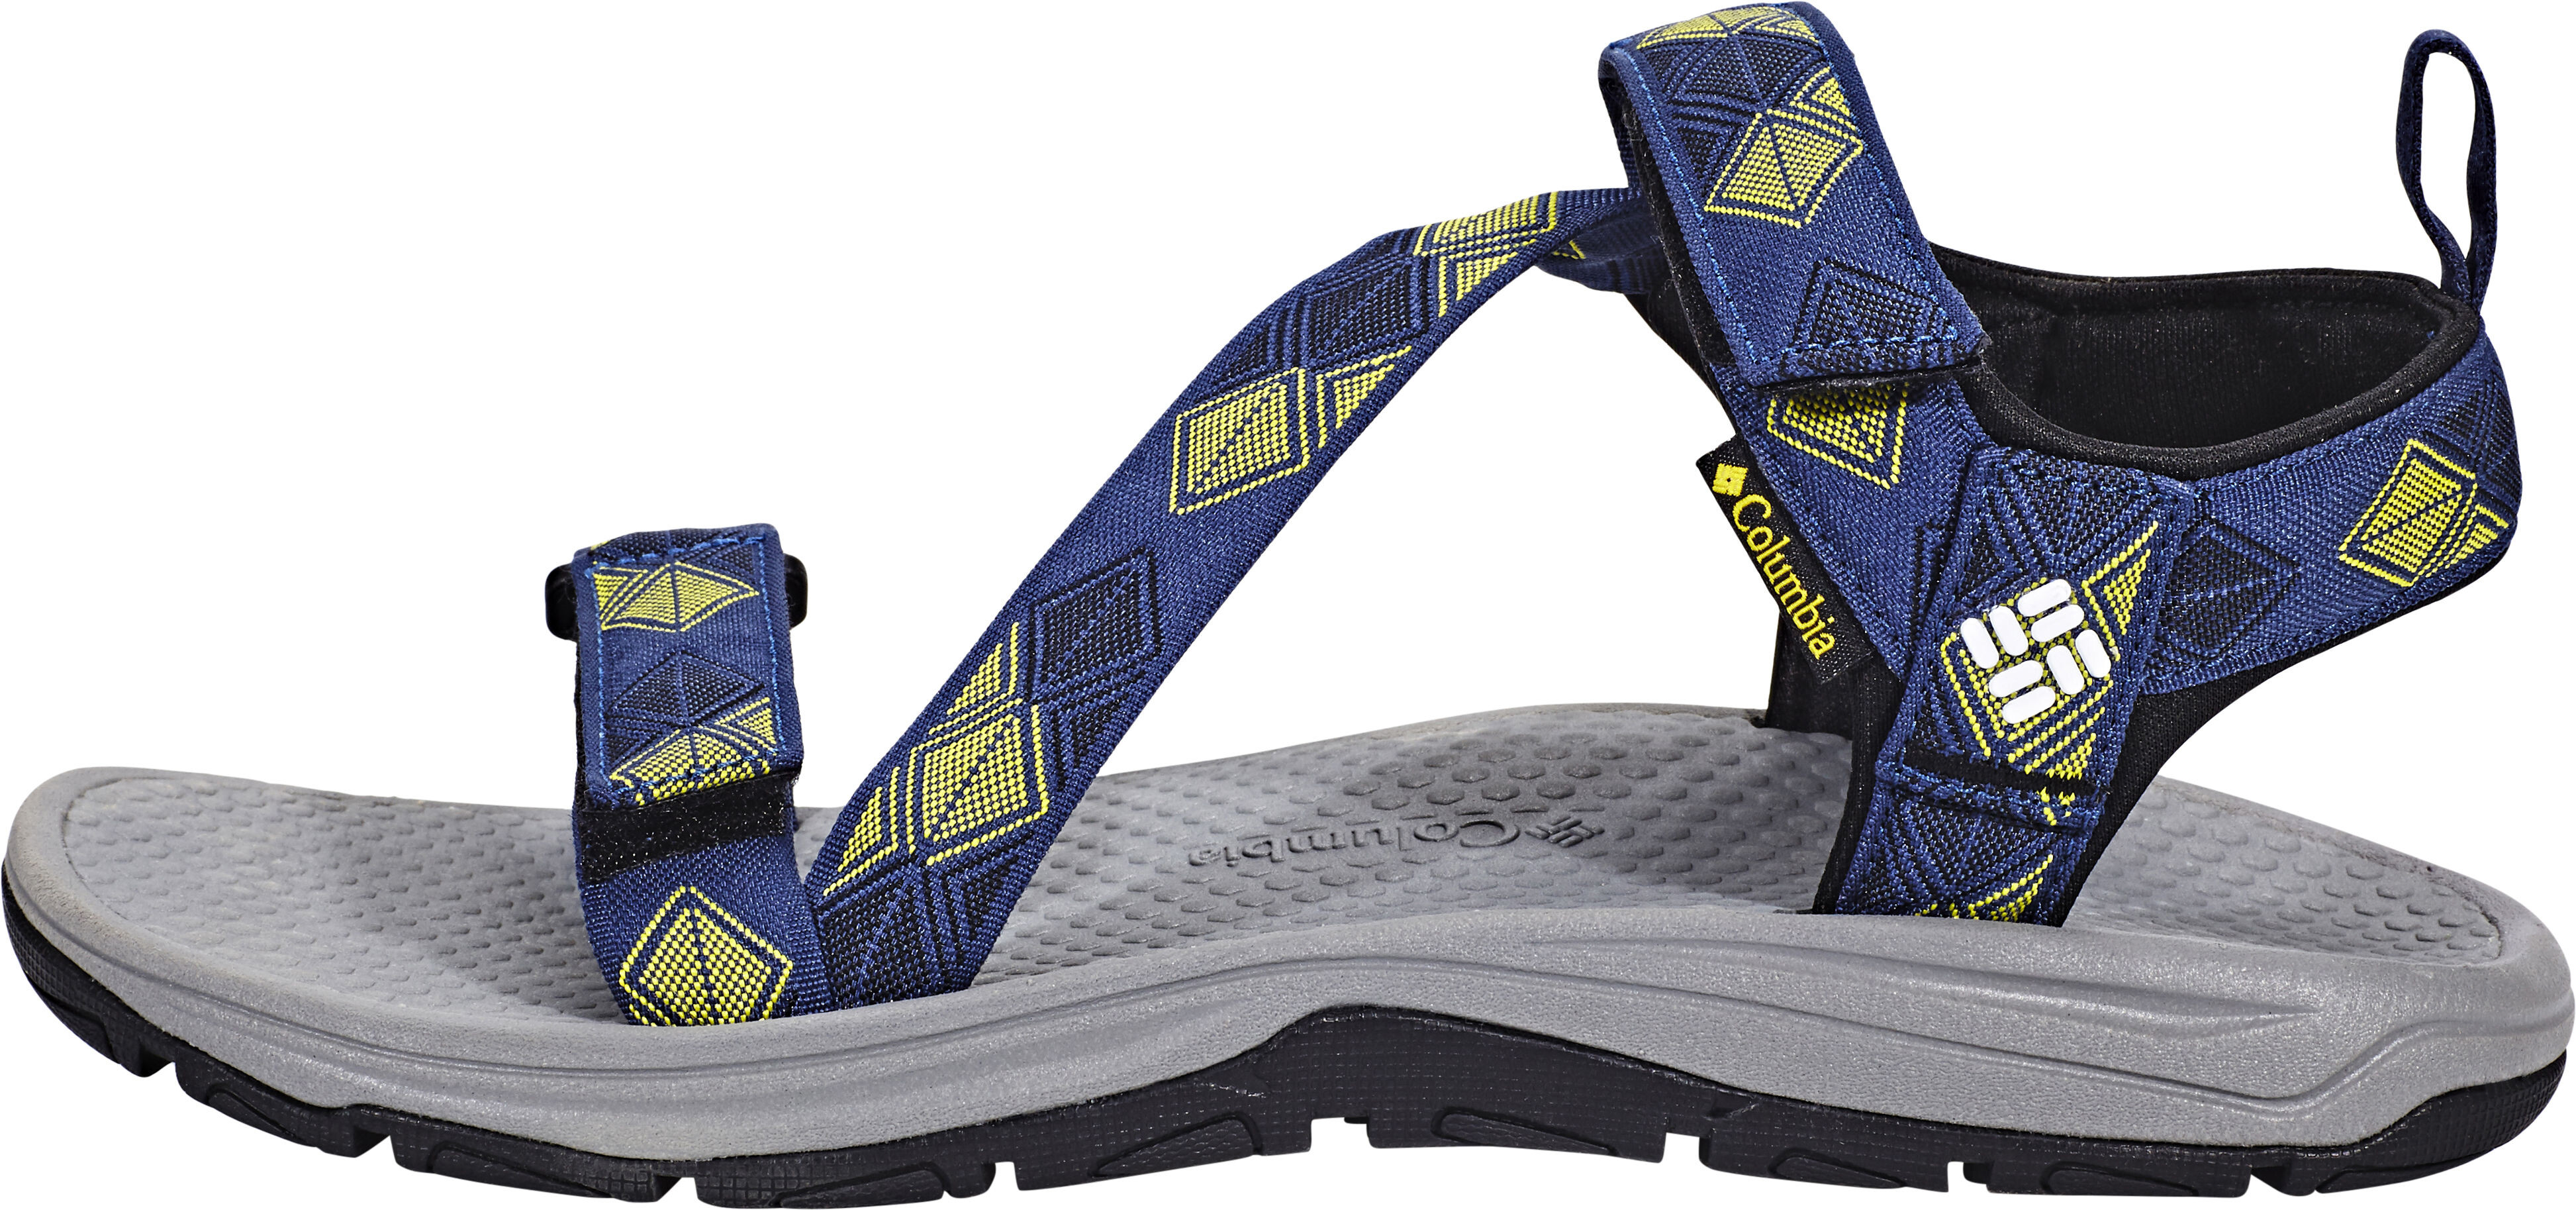 8633ad3c Columbia Wave Train Sandals Men yellow/blue at Addnature.co.uk